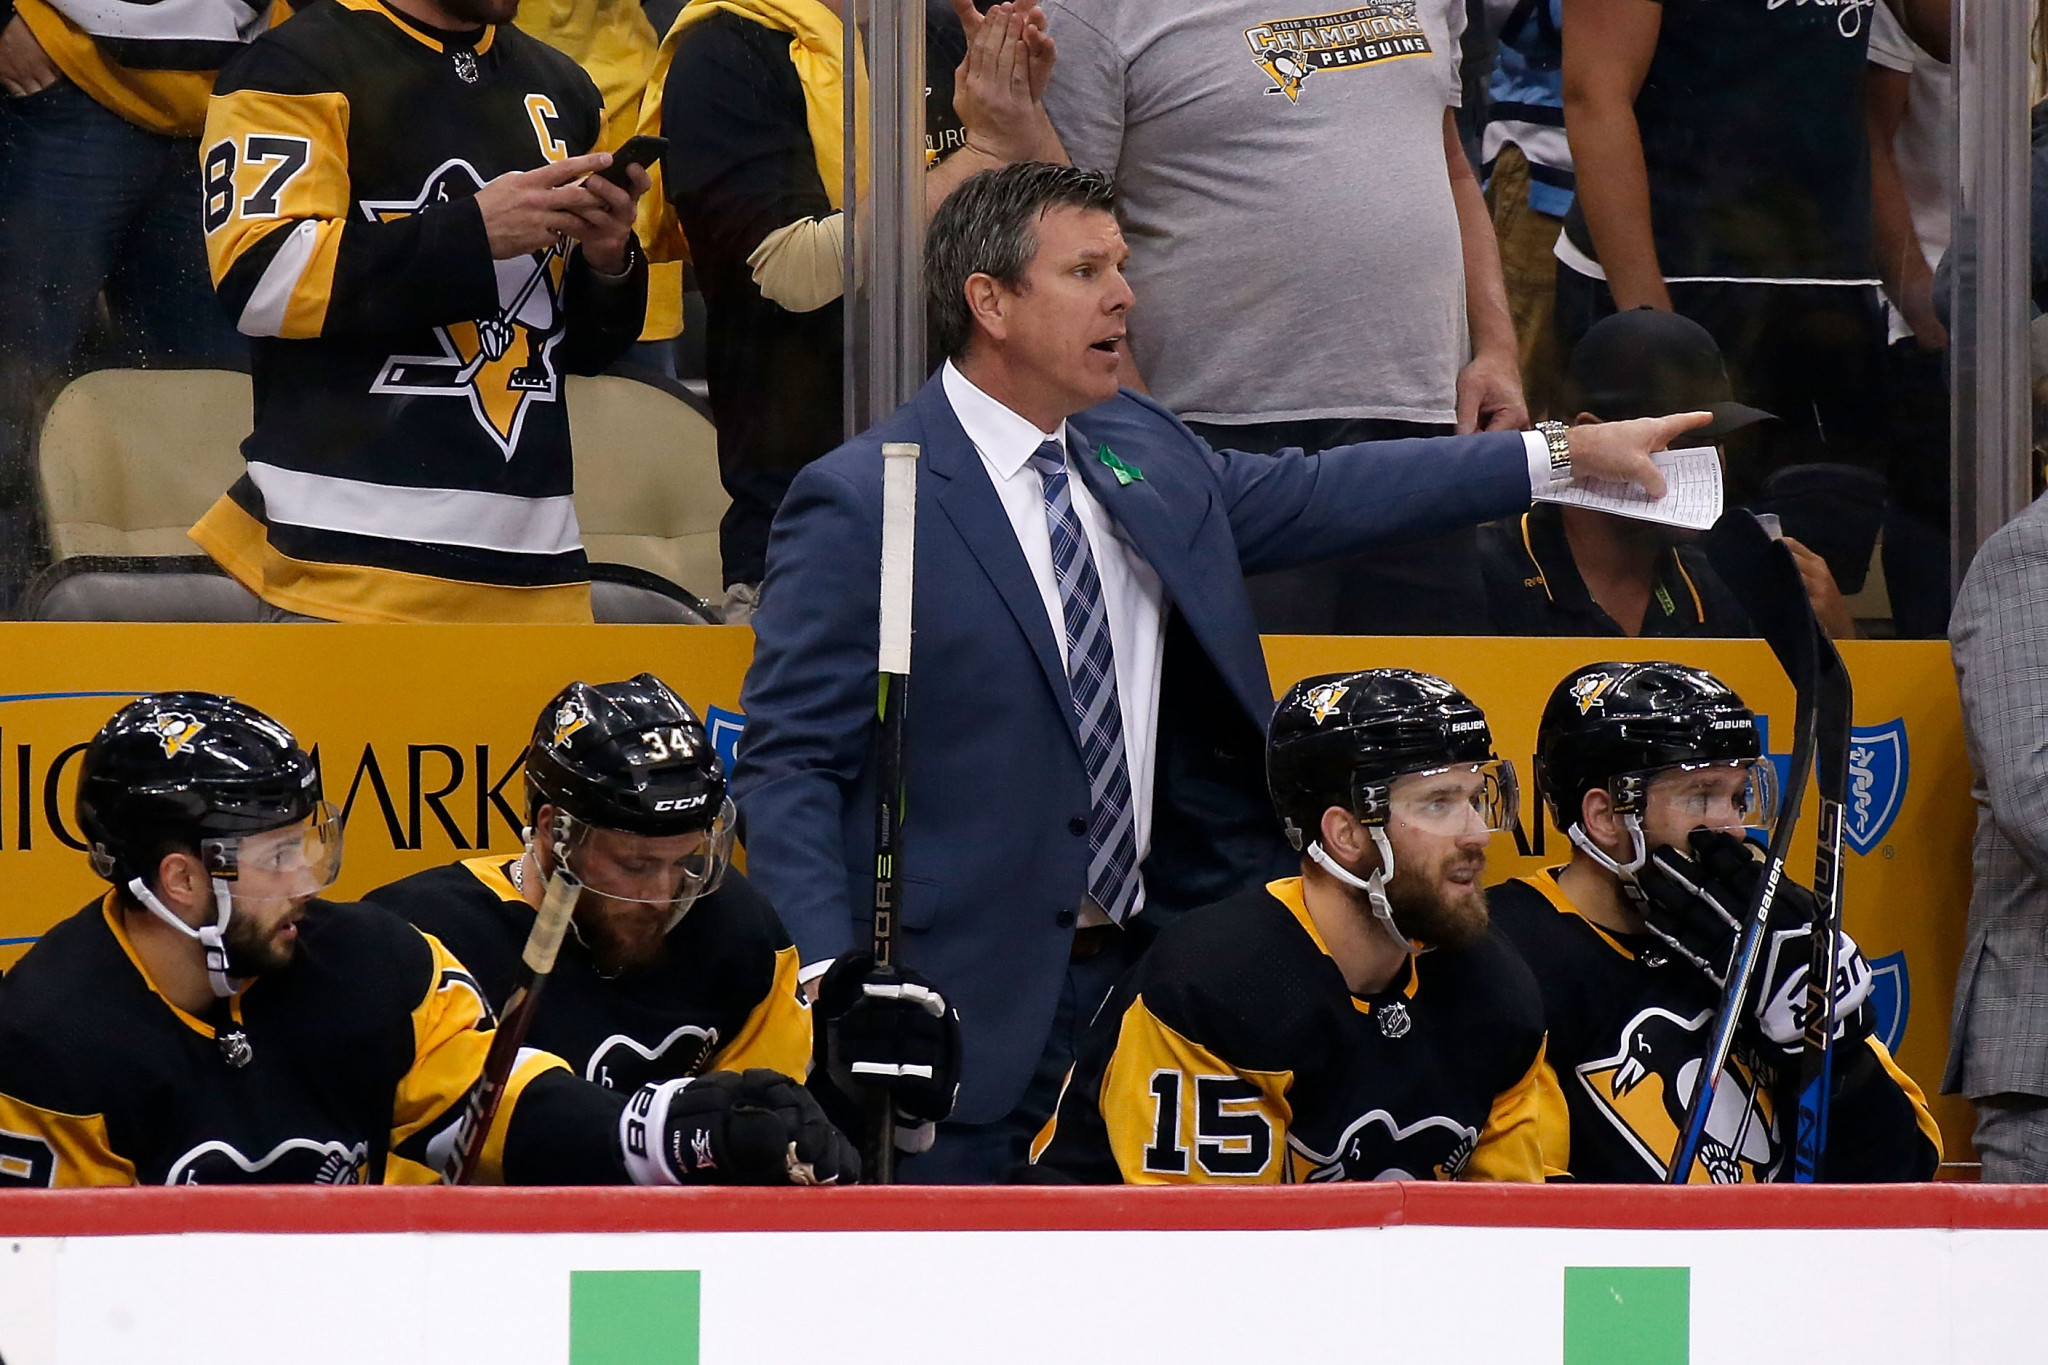 Sullivan and Johnson appointed head coaches of US ice hockey teams for Beijing 2022